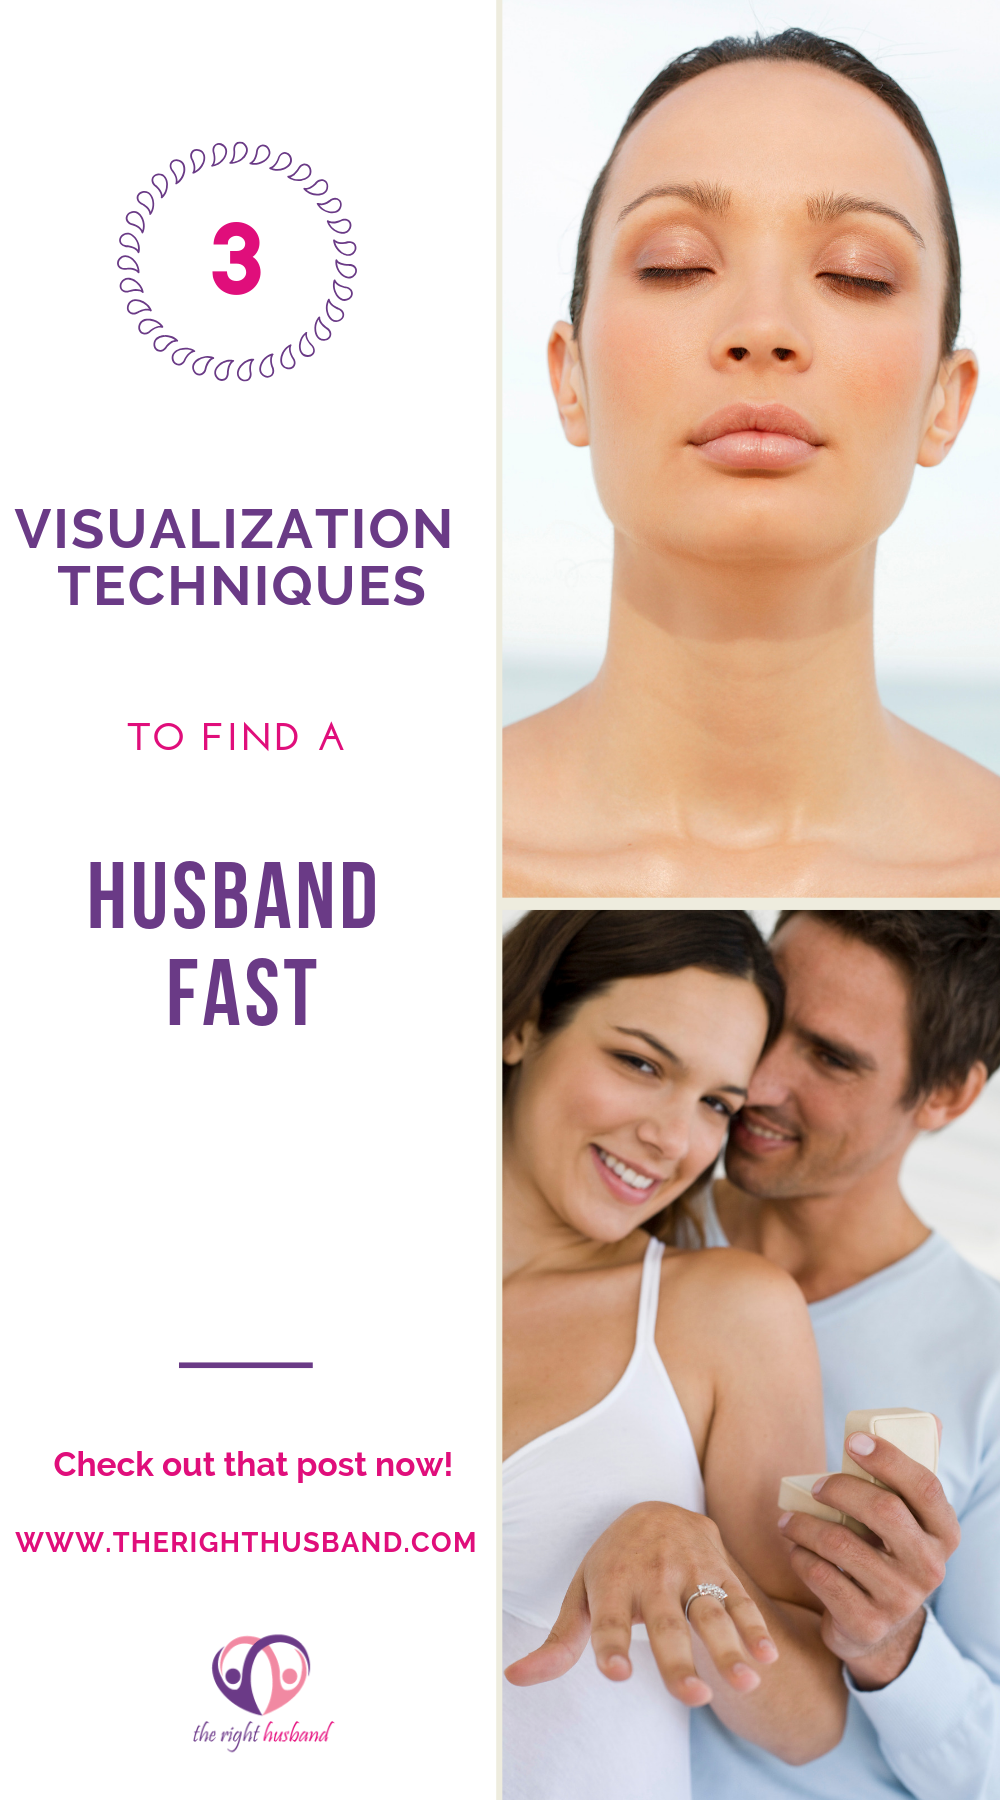 1000x1800 3 easy visualization techniques to find a husband fast 2